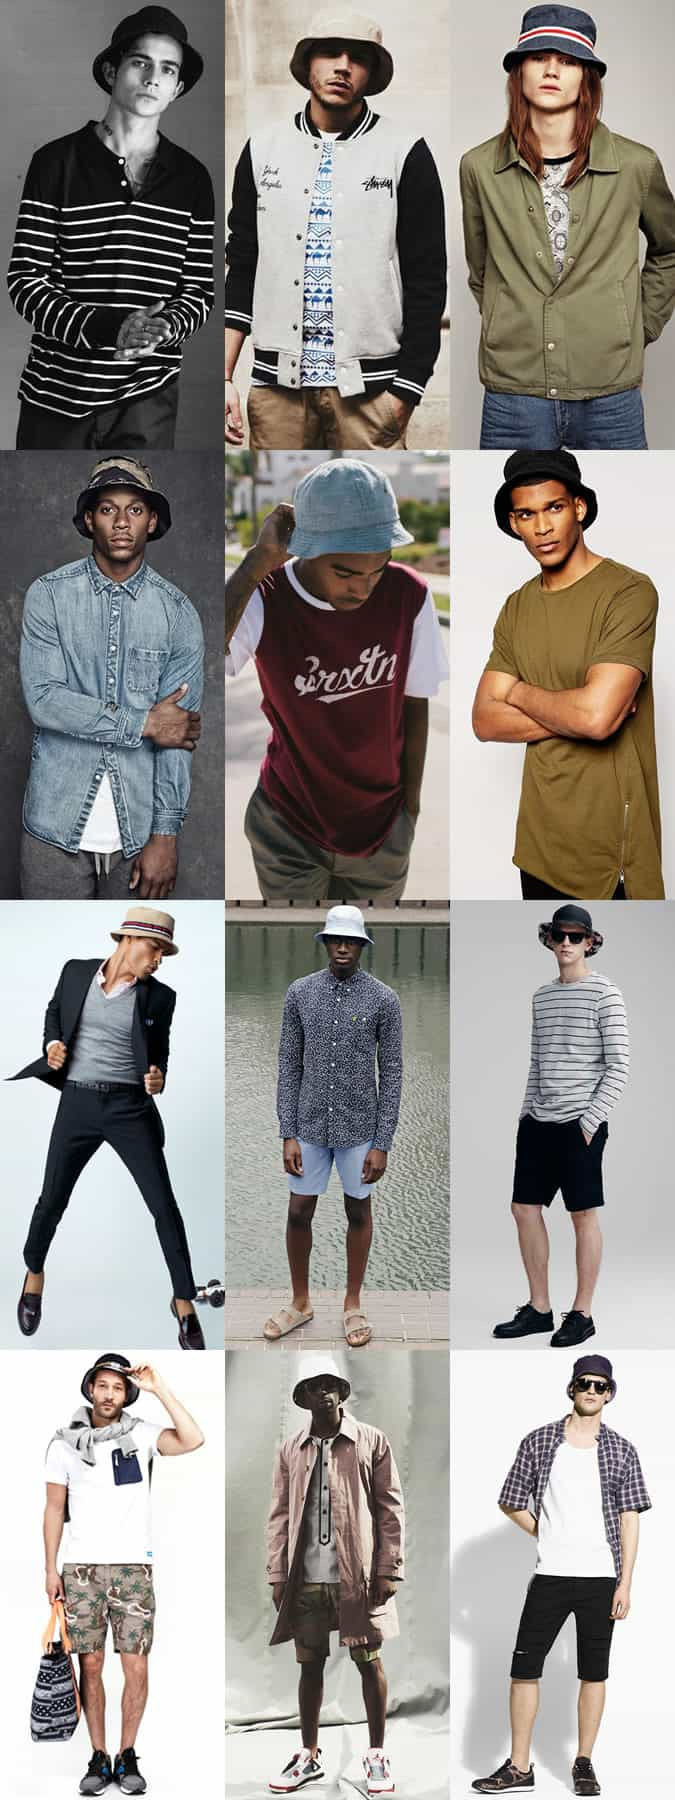 Men's Bucket Hat Outfit Inspiration Lookbook